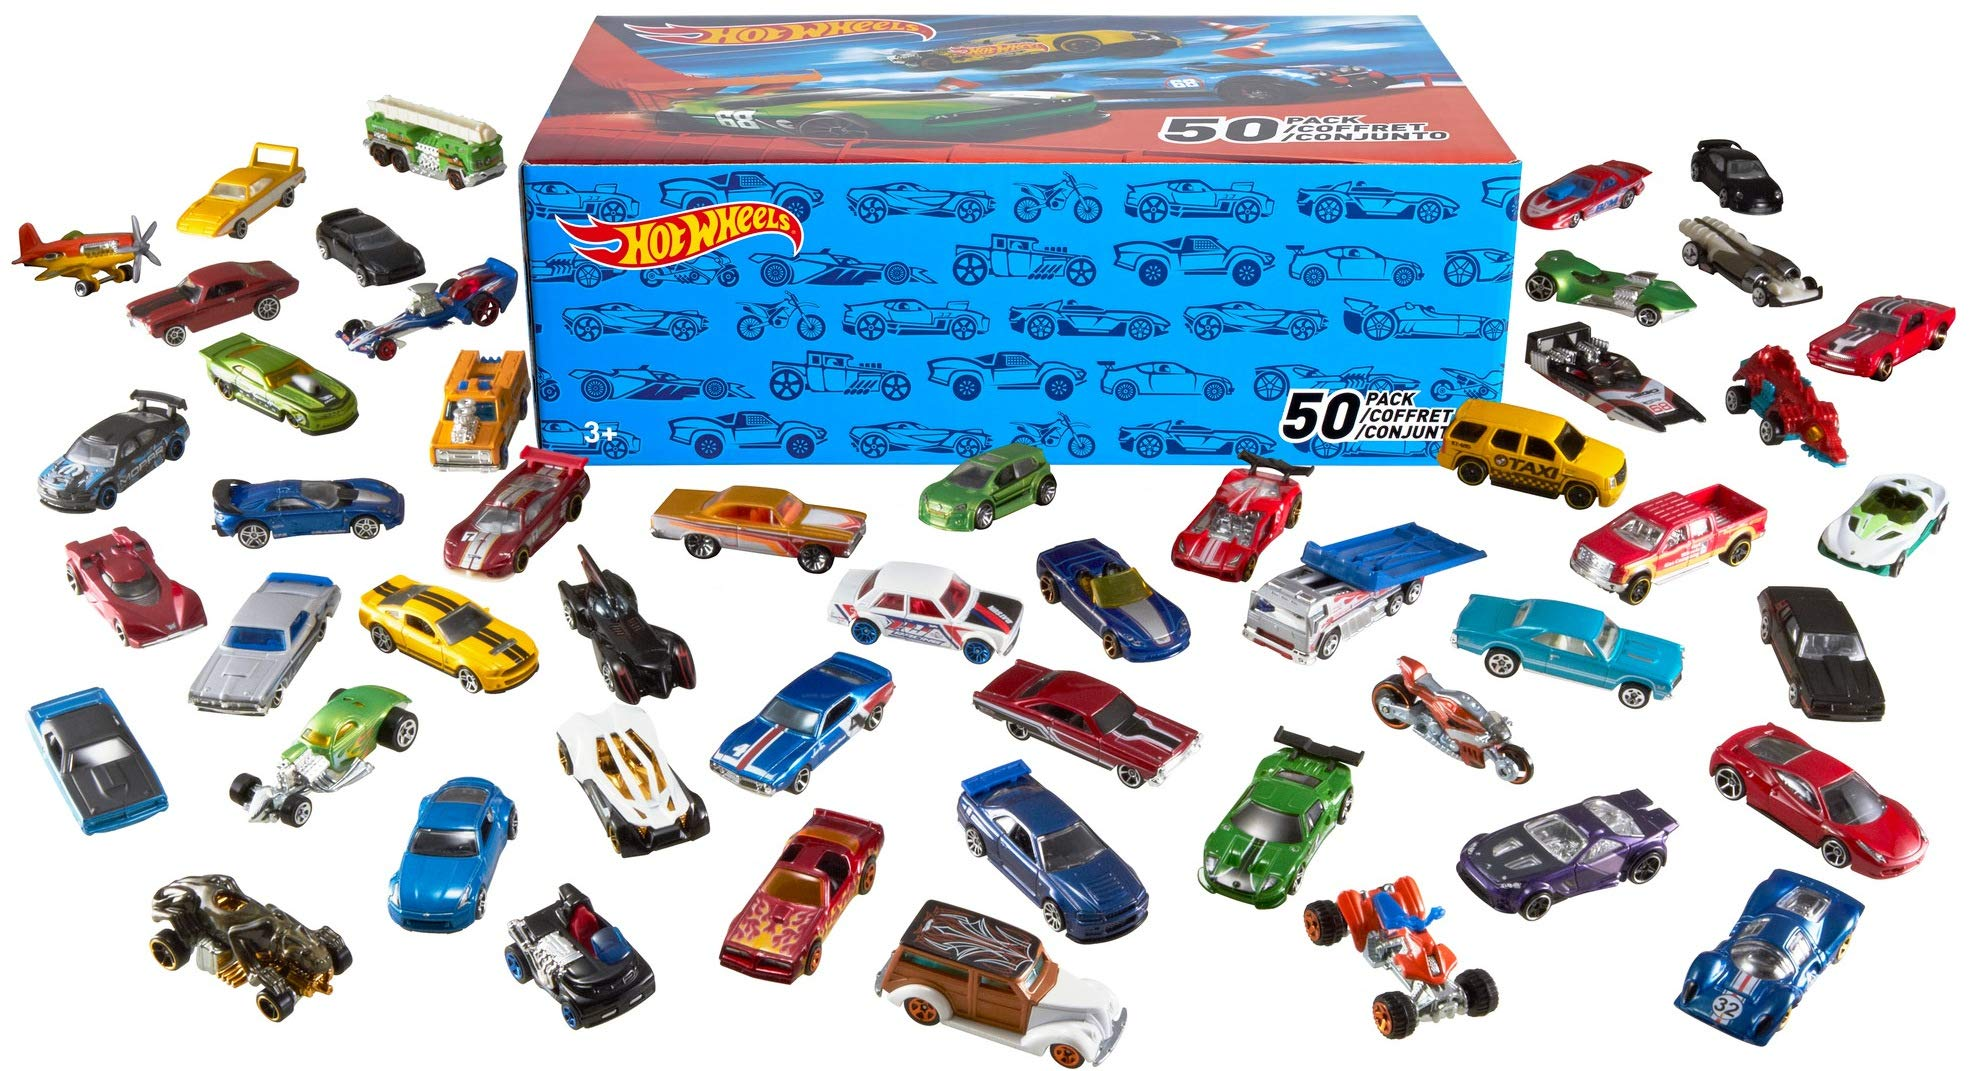 Hot Wheels V6697 50 Diecast Car Pack and Mini Toy Cars